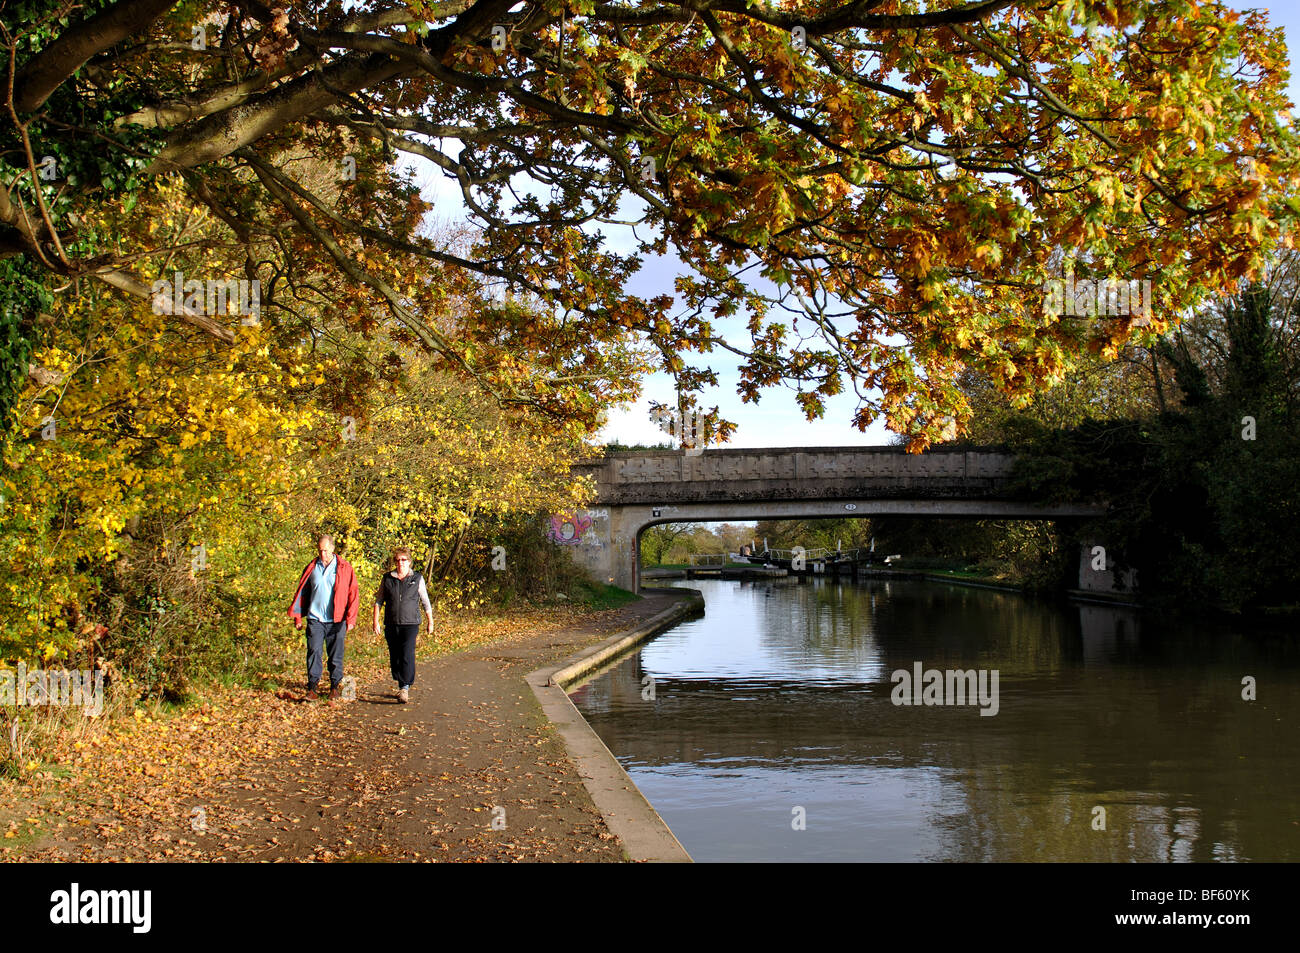 Couple walking along canal towpath in autumn, Hatton Locks, Grand Union Canal, Warwickshire, England, UK - Stock Image